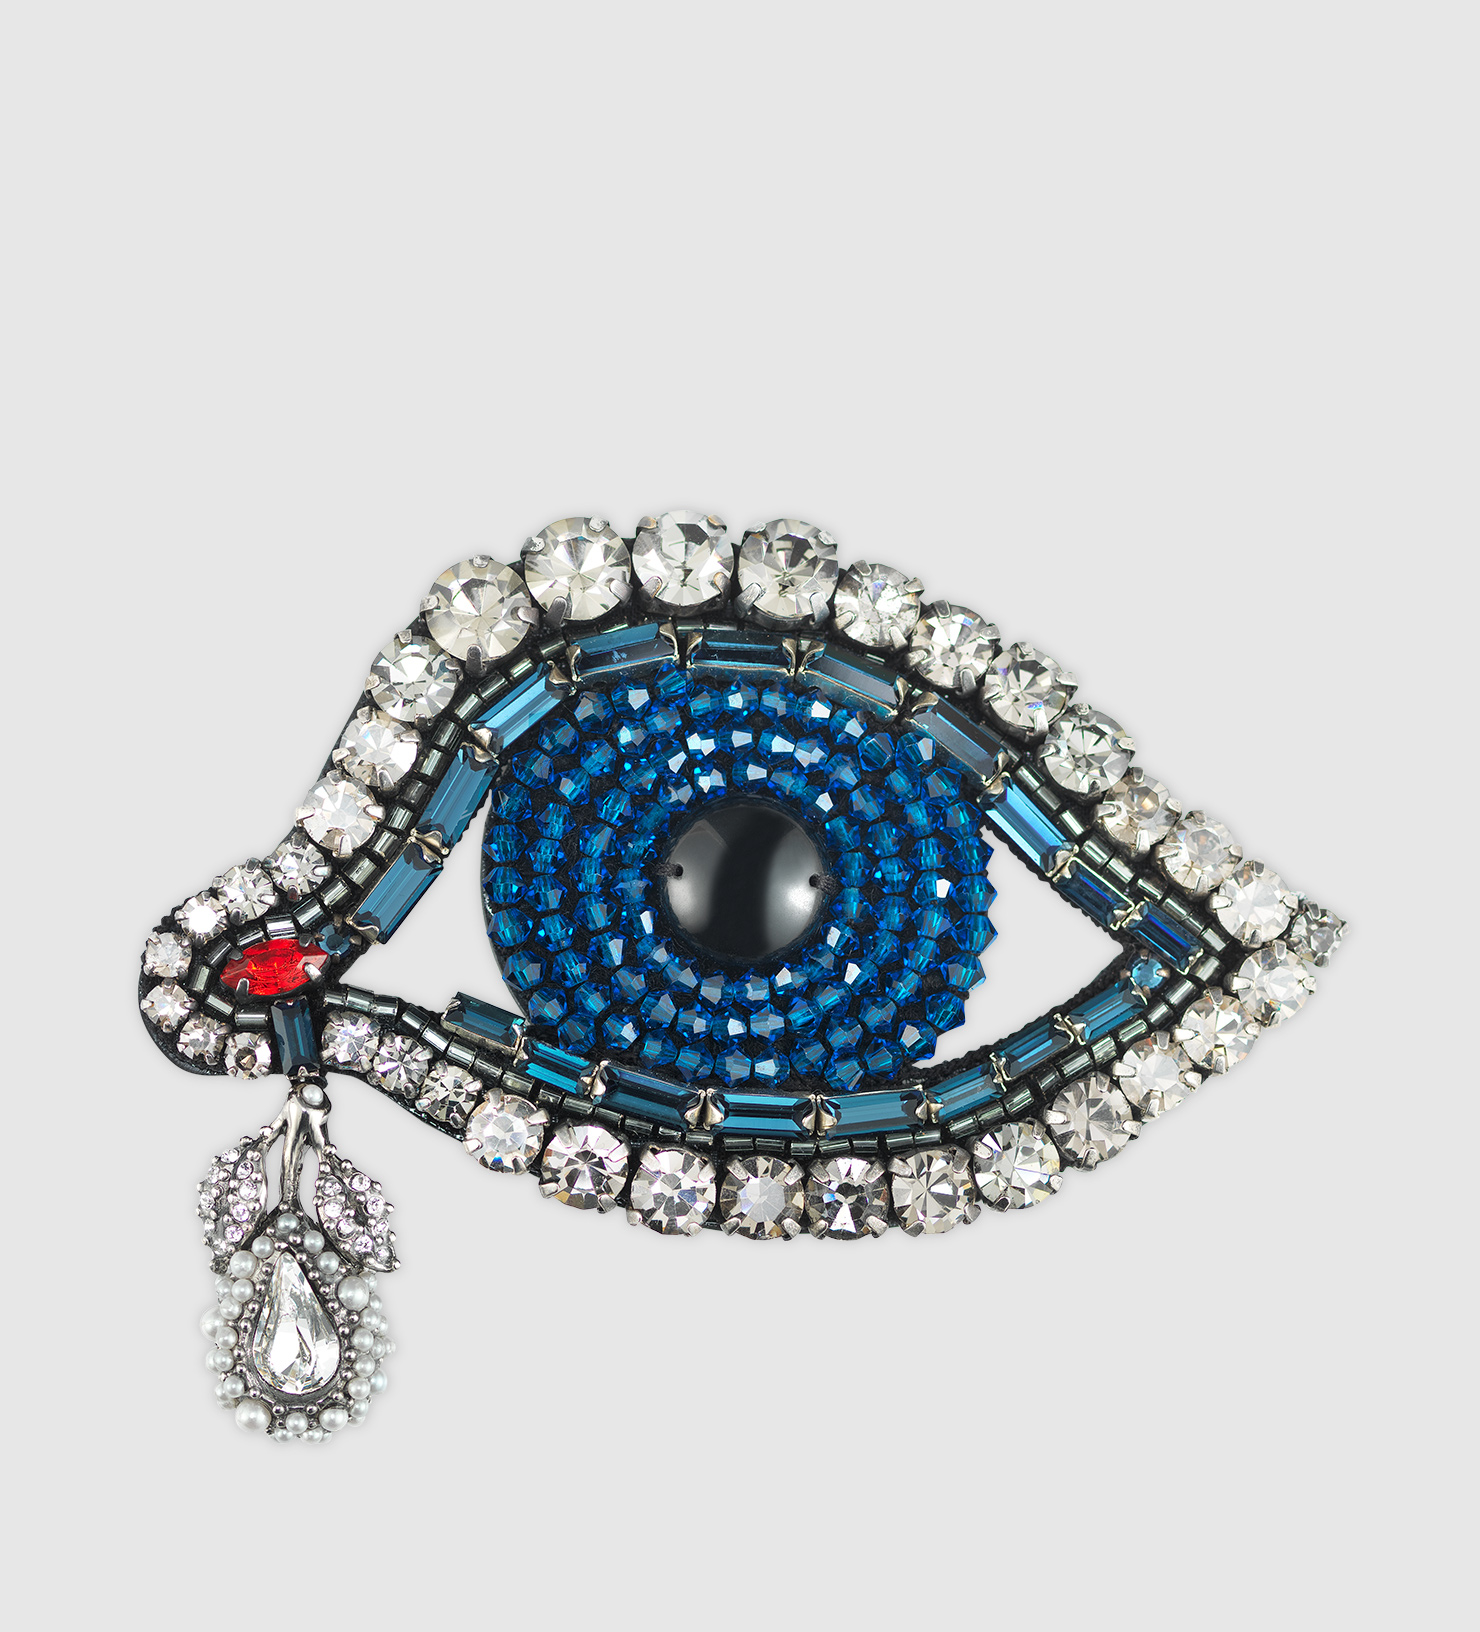 vitau nyr a eye brooch details gem diamond multi van by lotfinder arpels and lot cleef fish jean